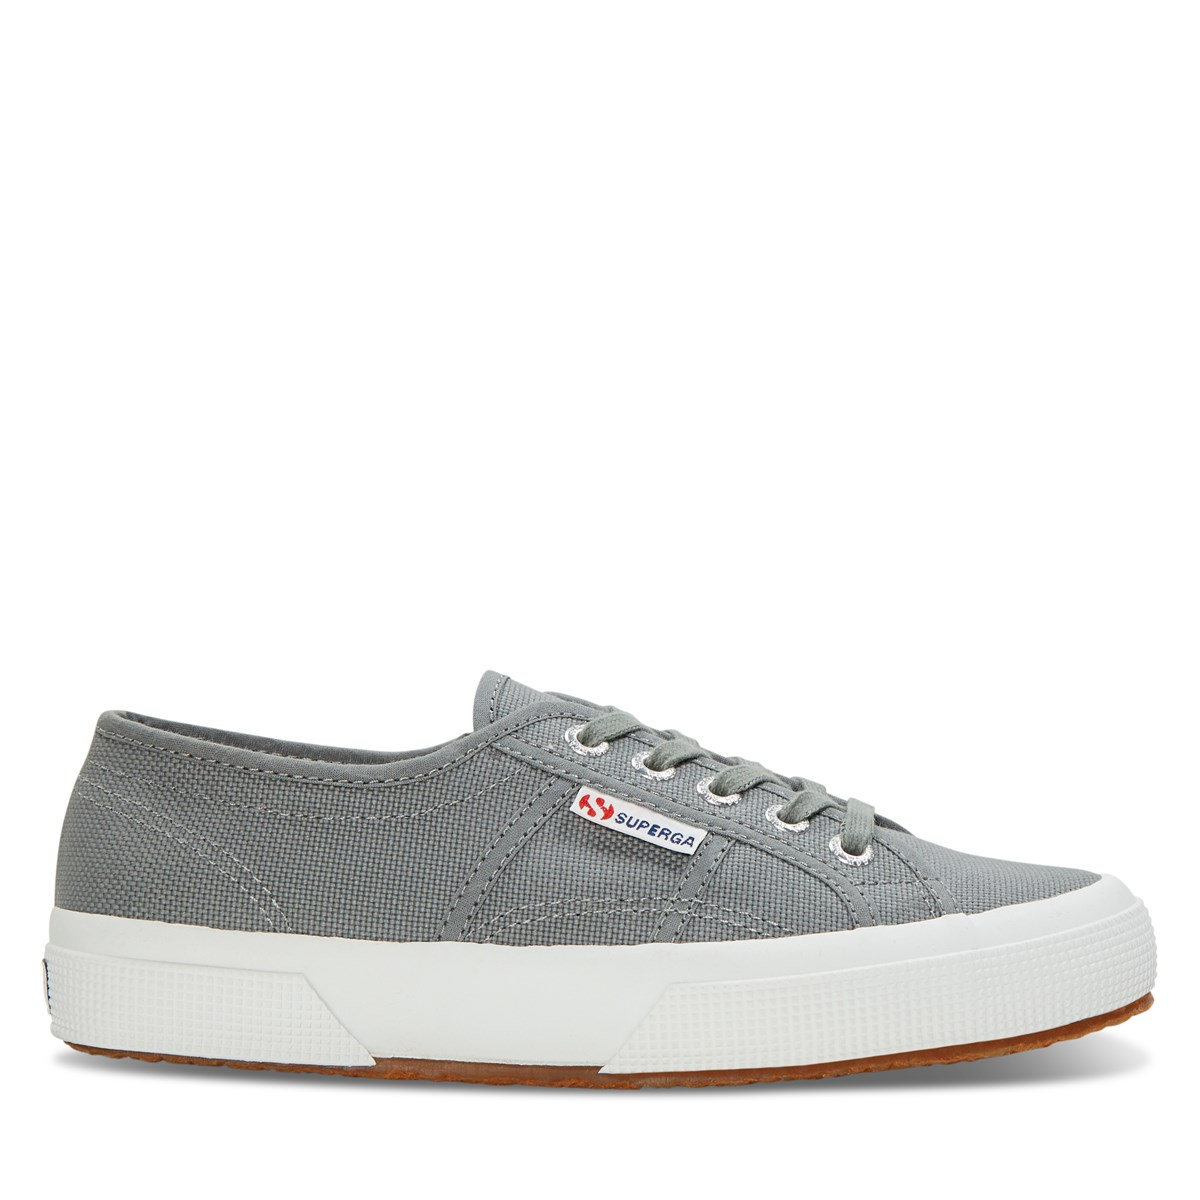 Women's COTU Classic Sneakers in Grey